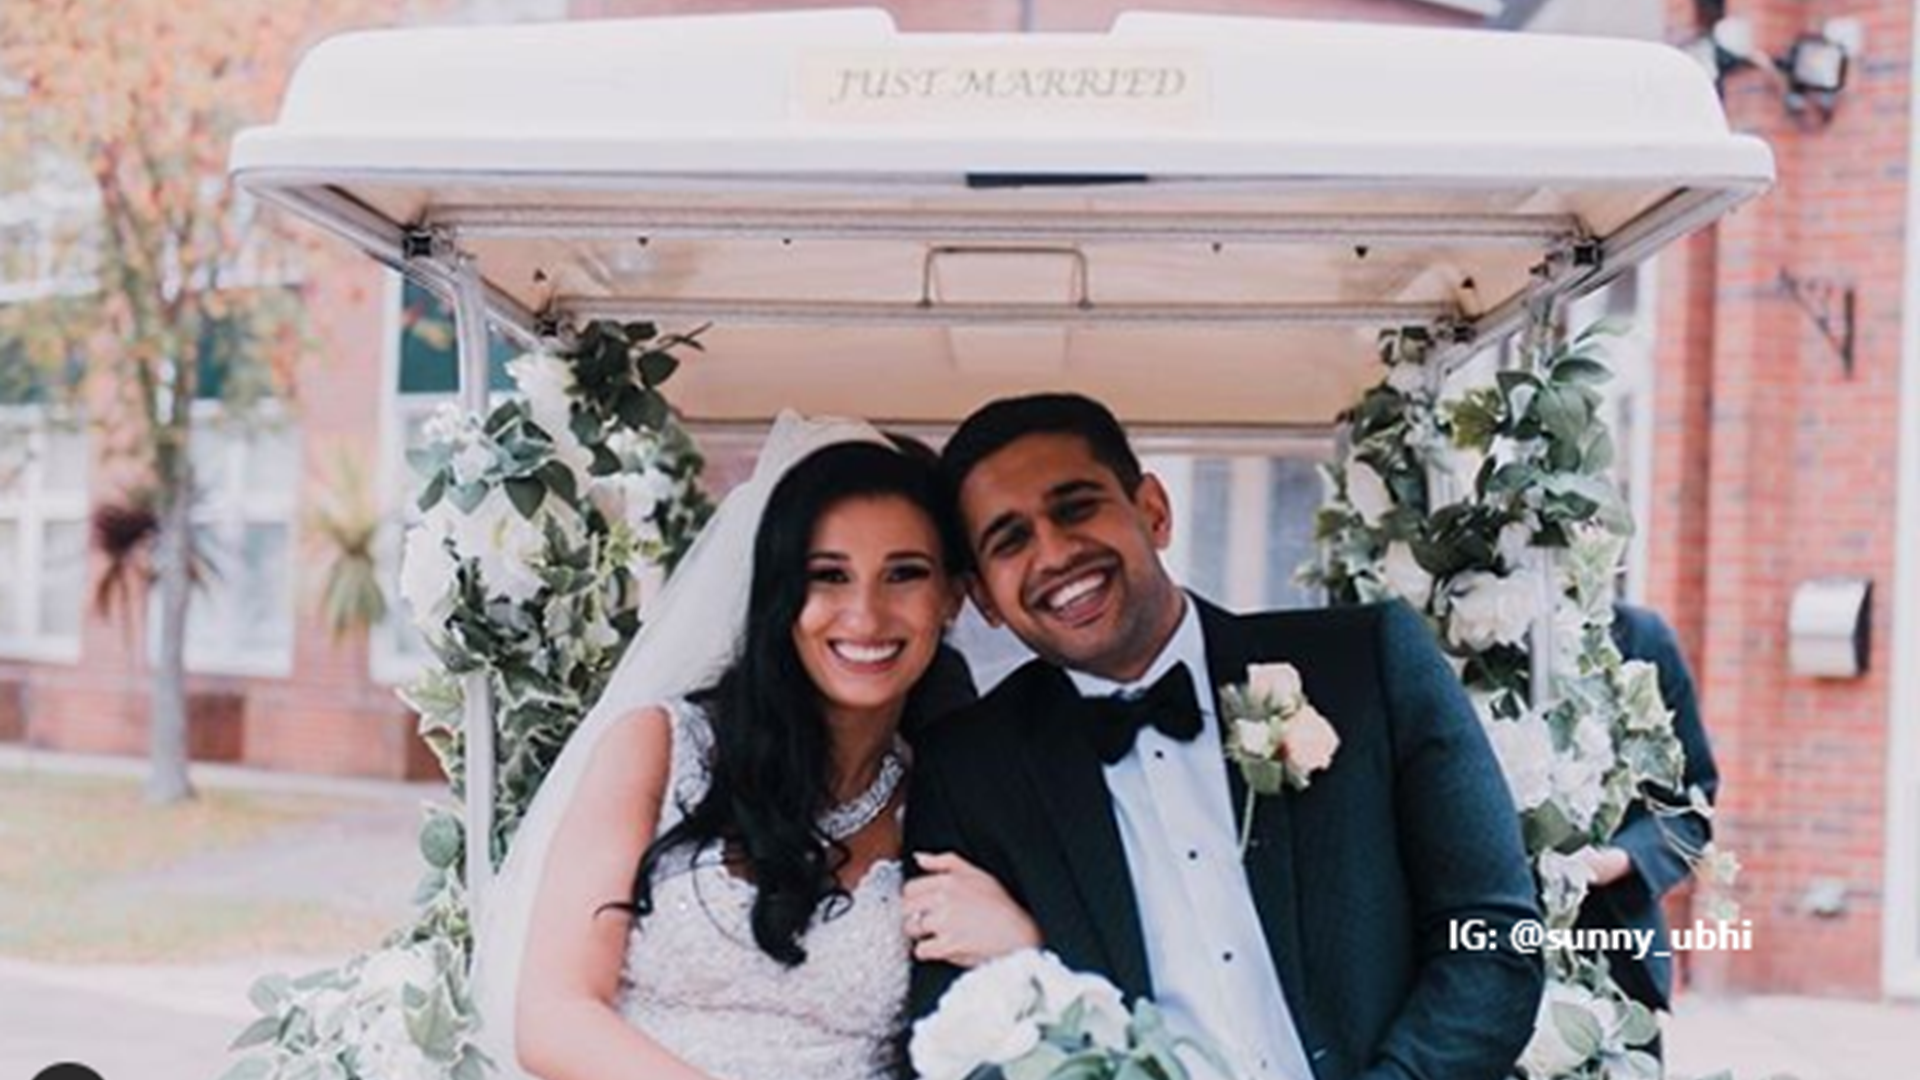 Newly married couple sitting and smiling on the back of a 'just married' golf cart